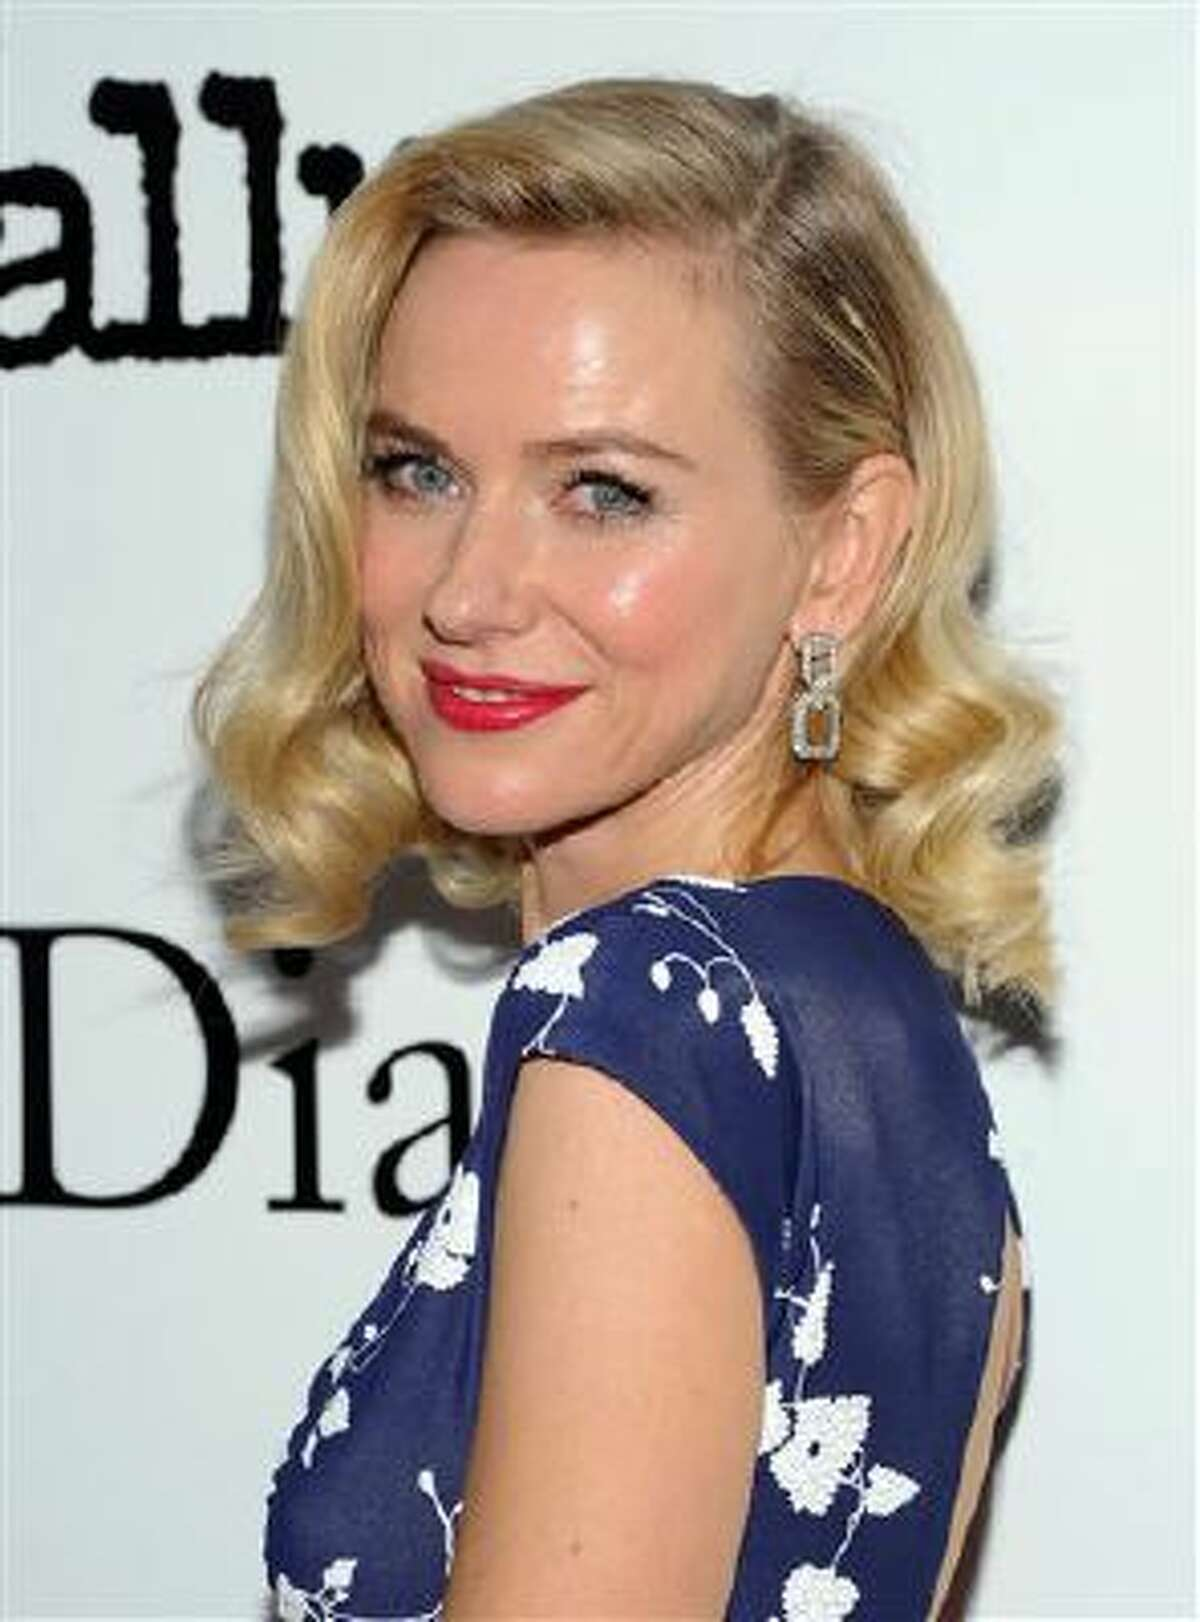 """Actress Naomi Watts attends the premiere of """"Diana"""" hosted by The Cinema Society, Linda Wells and Allure Magazine at the SVA Theater on Wednesday, Oct. 30, 2013 in New York."""